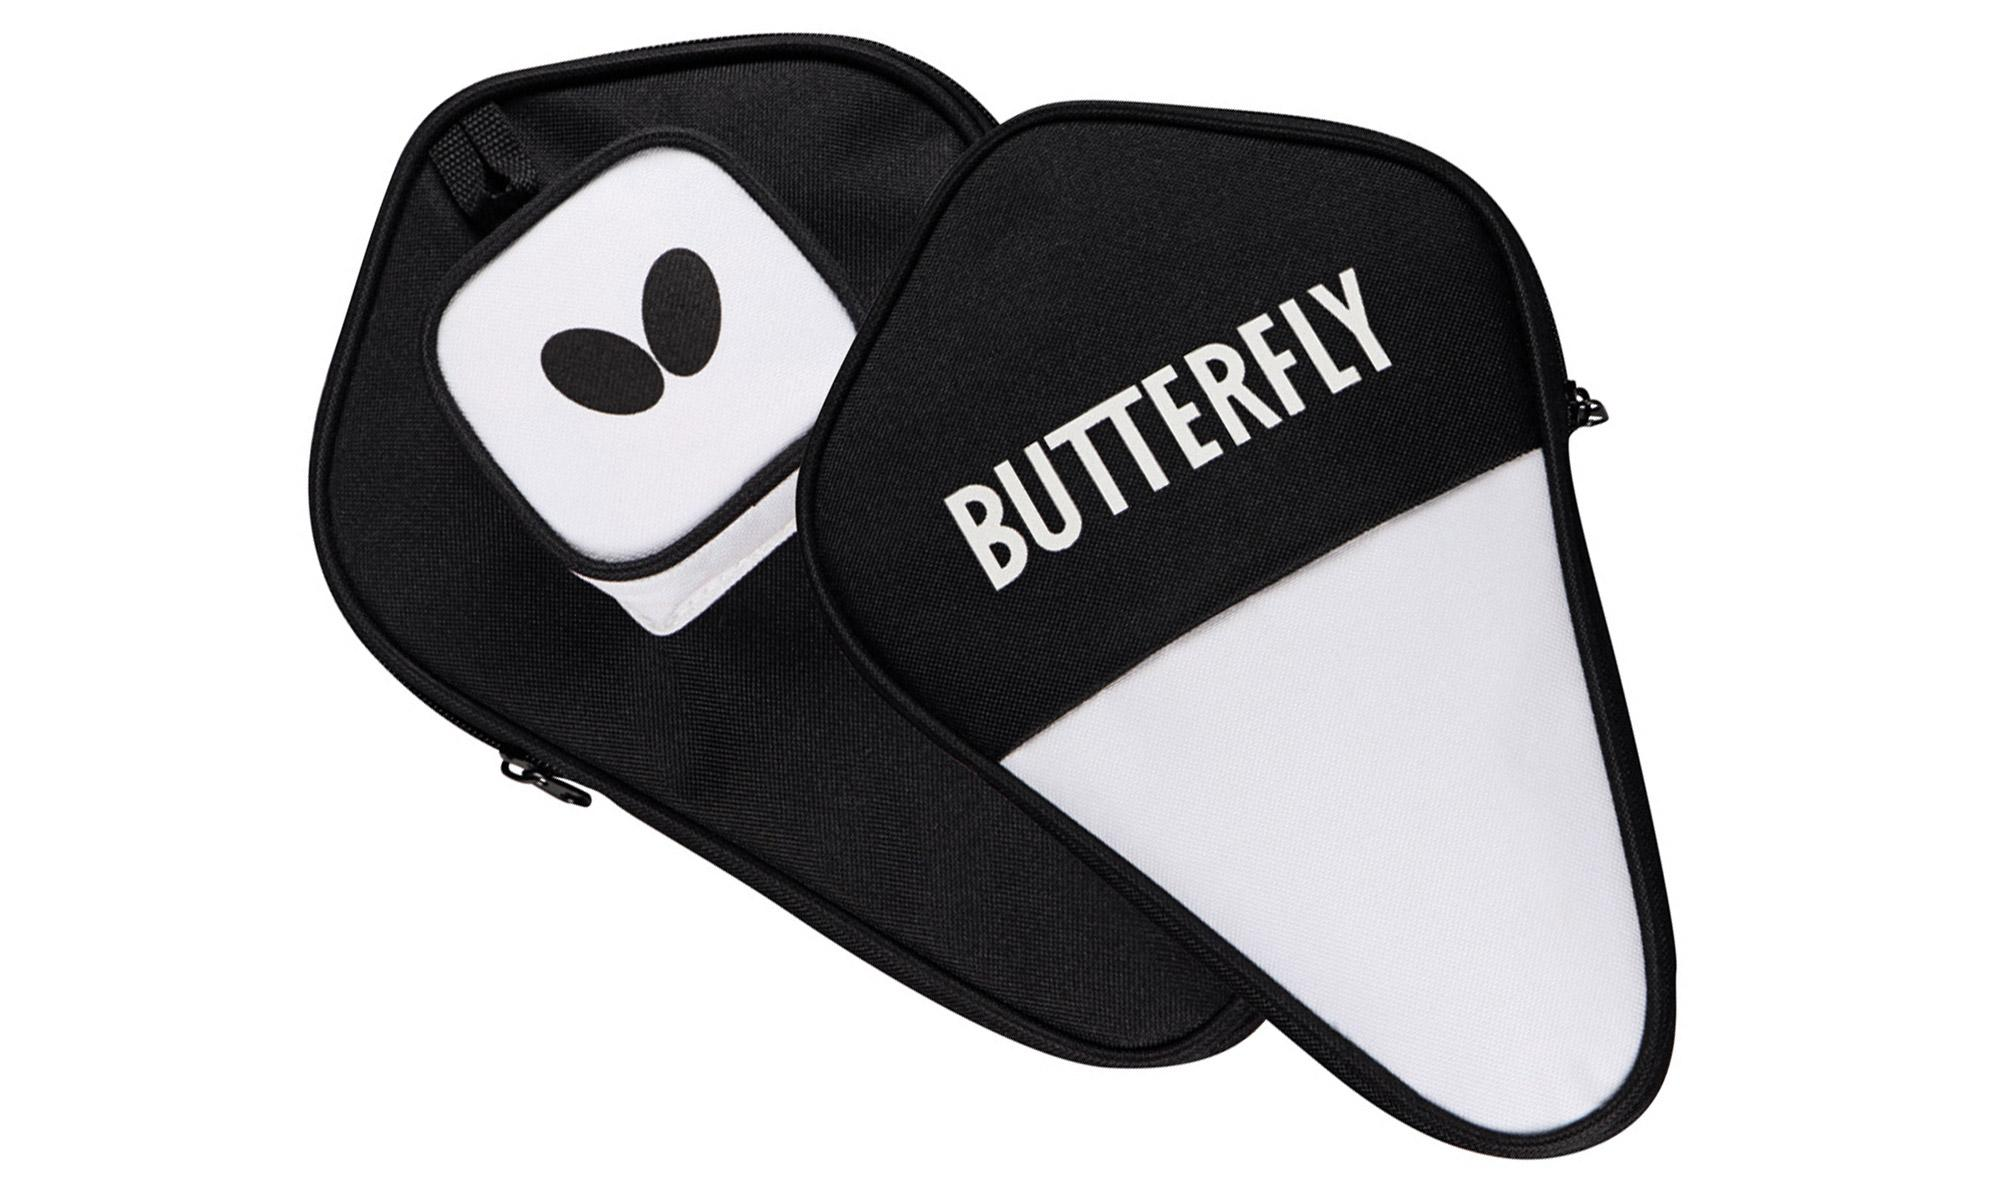 Butterfly Timo Boll Bat Case